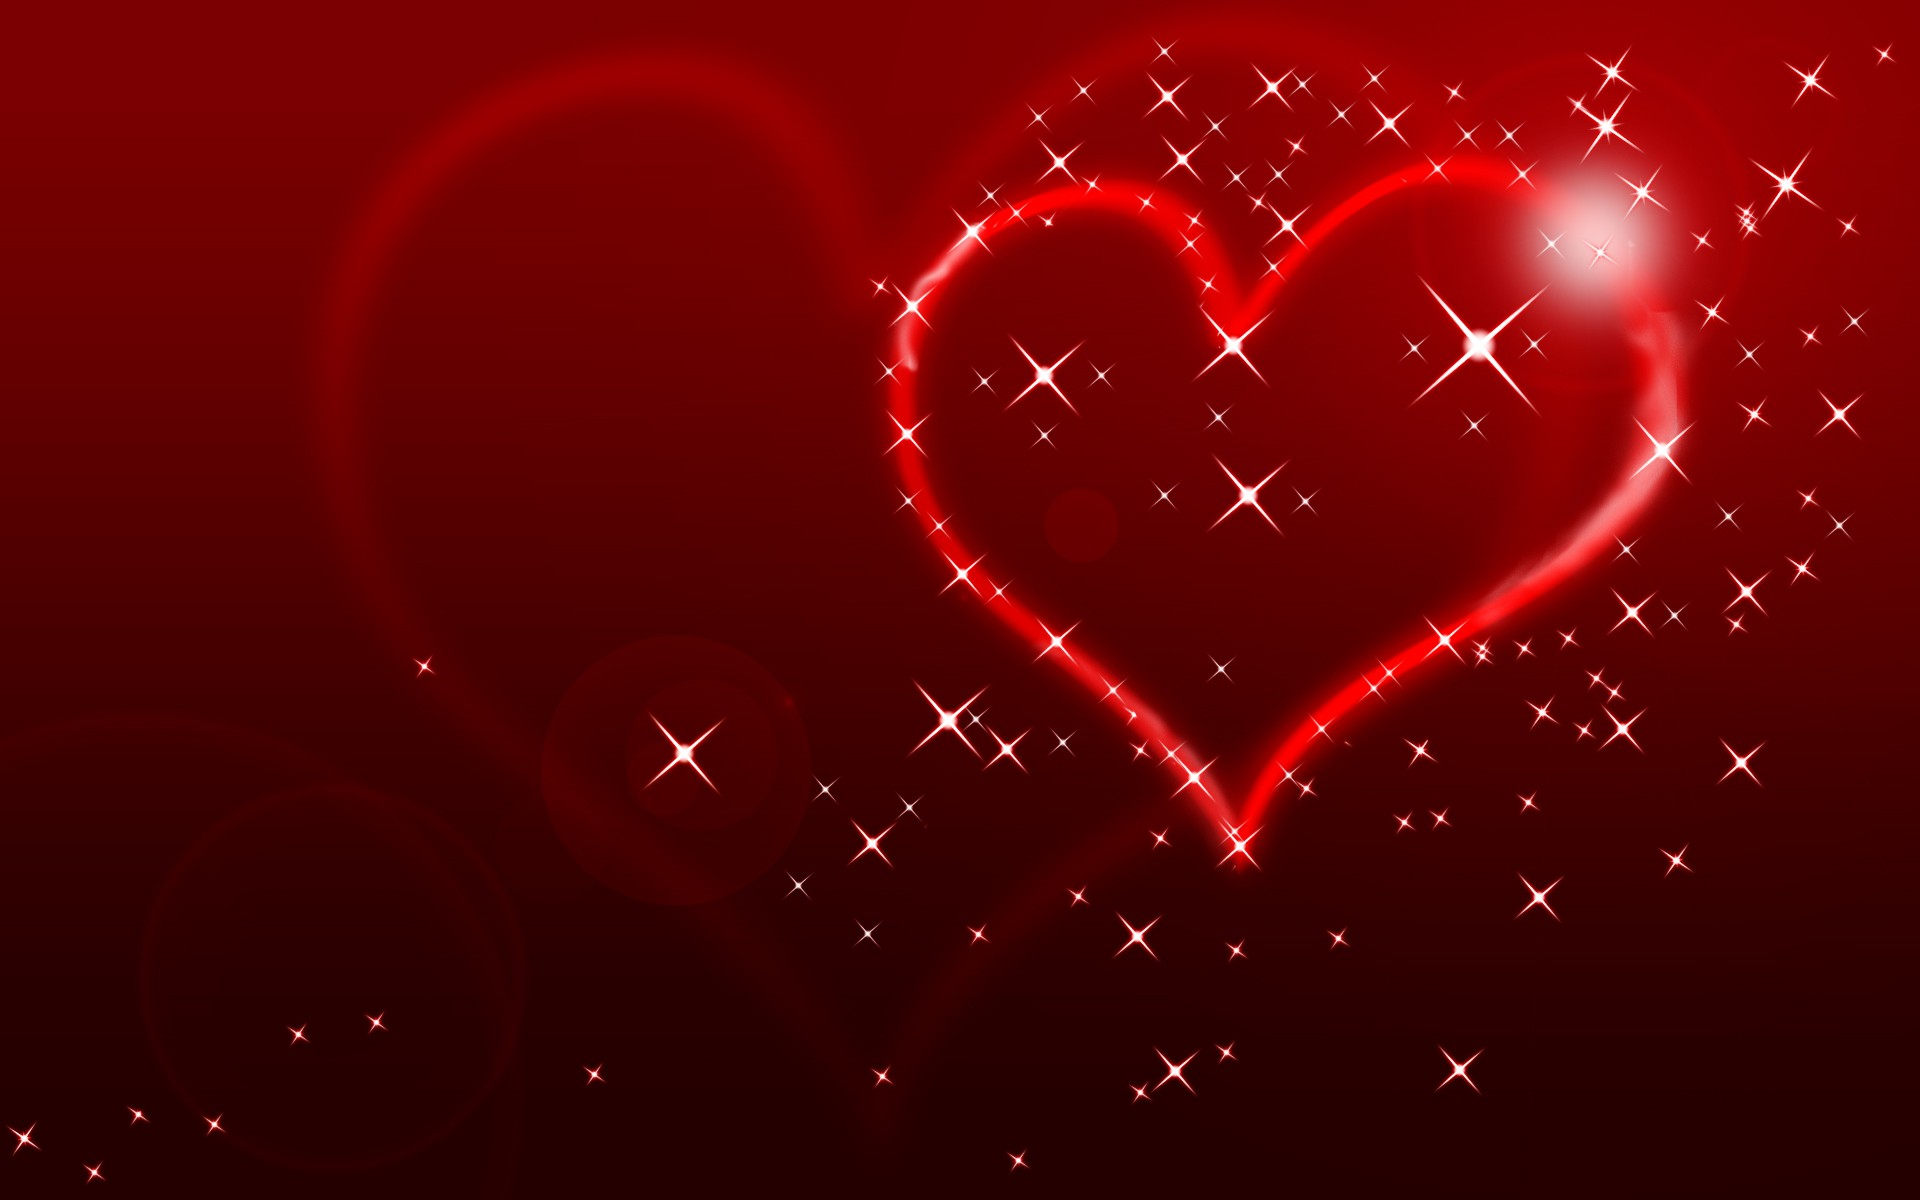 Valentine Wide High Definition Wallpaper For Desktop 1920x1200